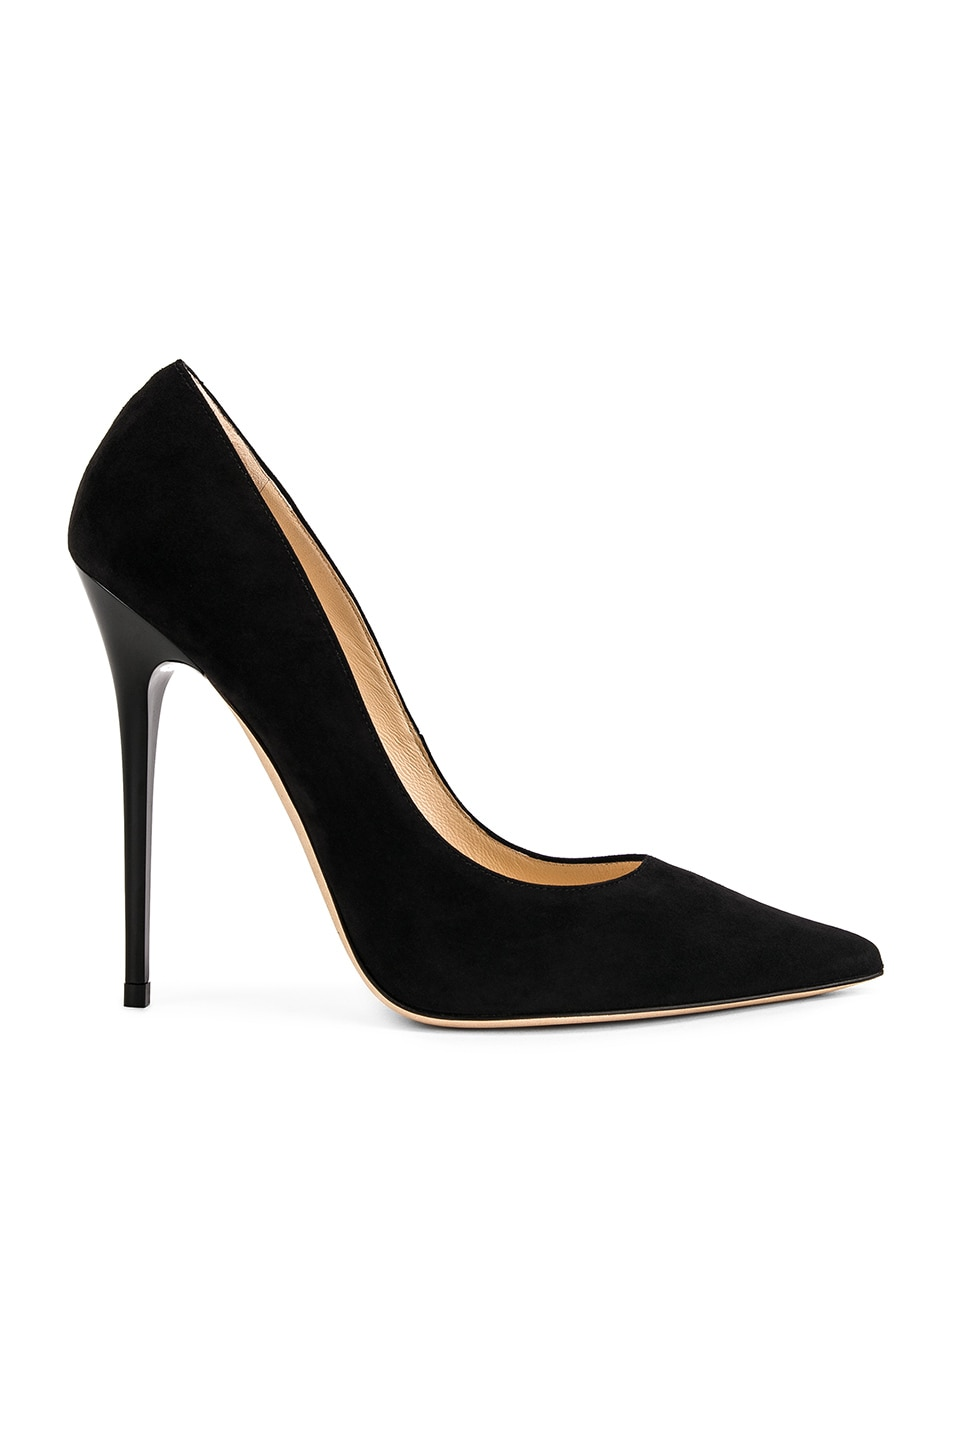 Image 1 of Jimmy Choo Anouk Suede Pumps in Black